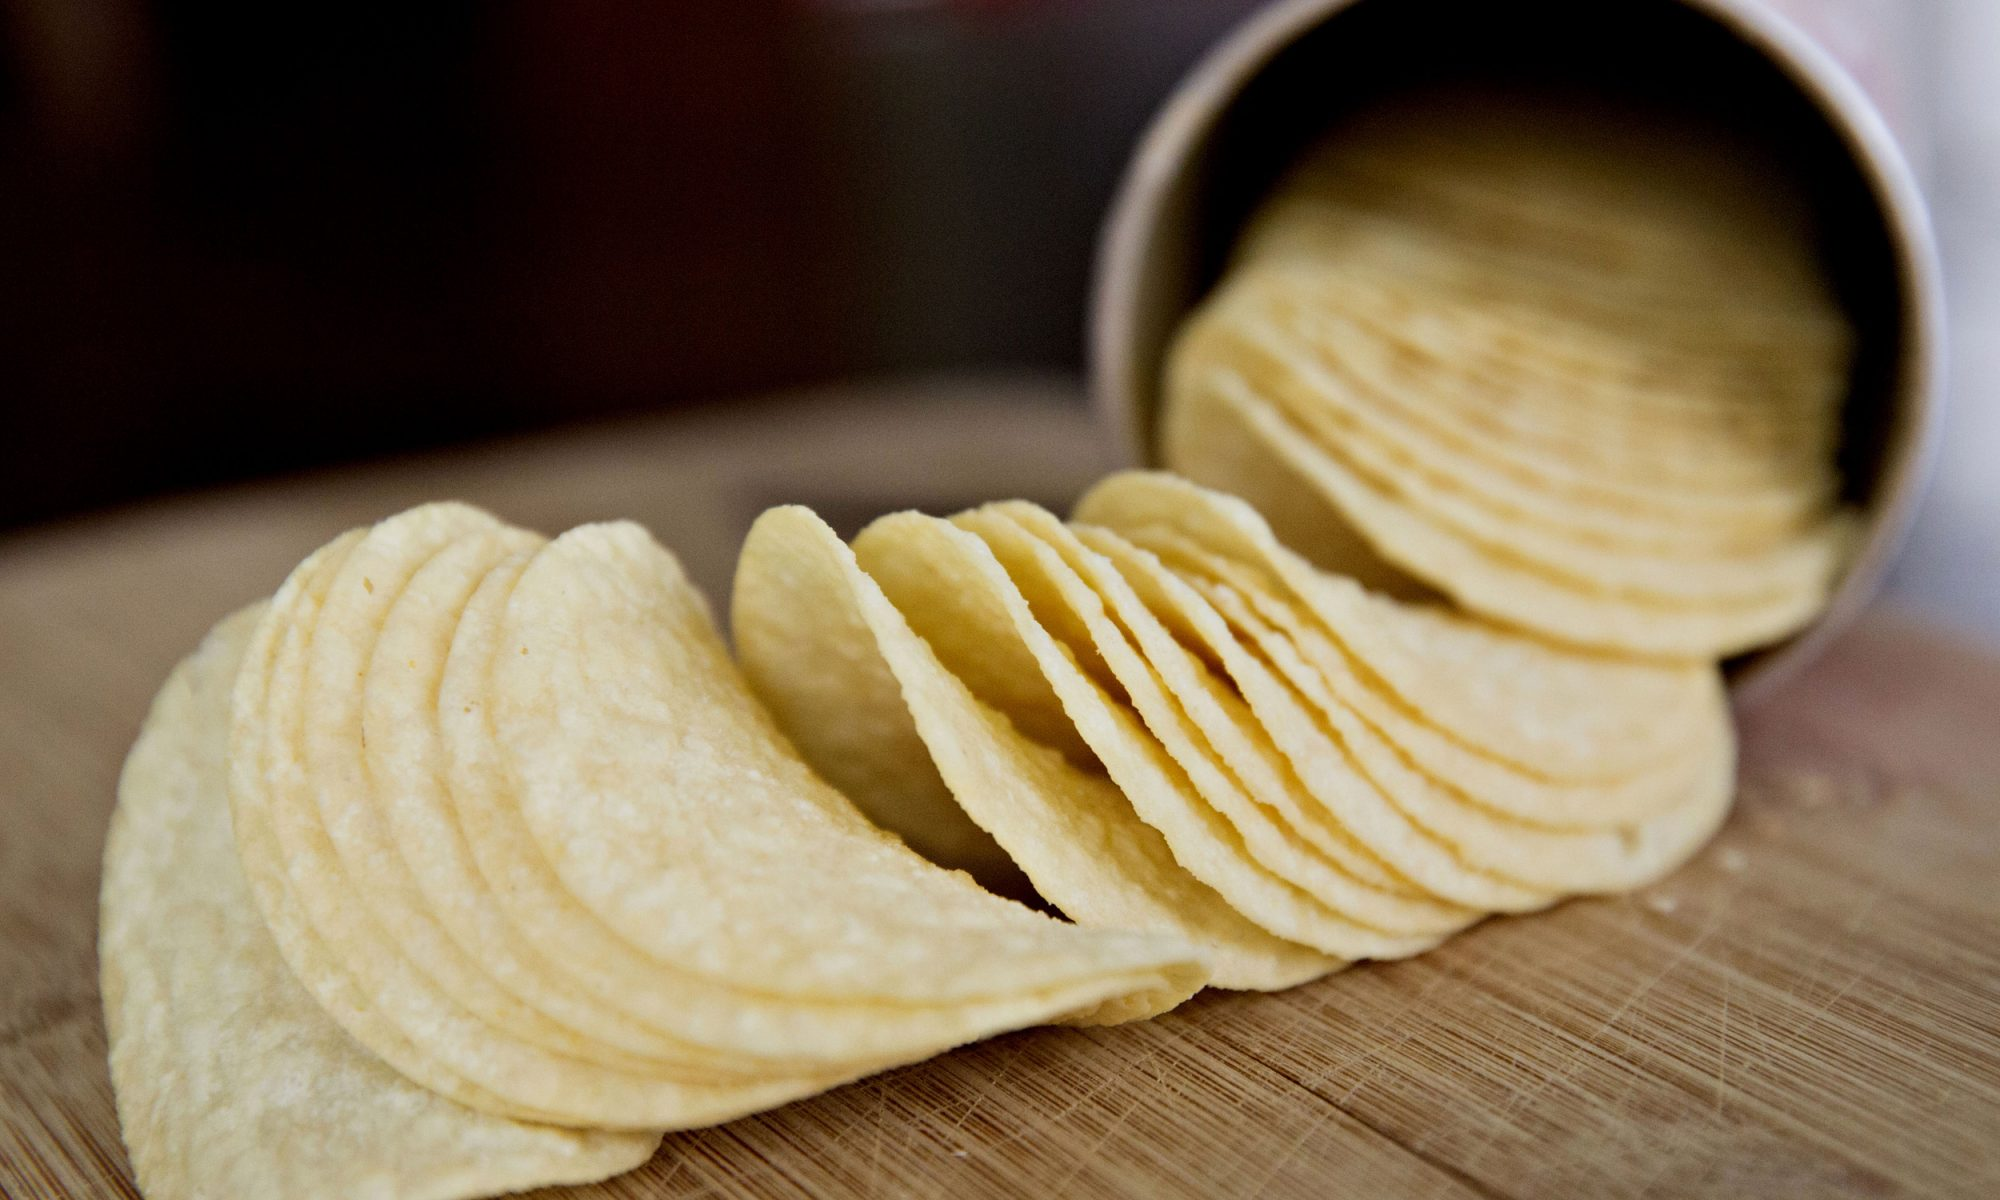 EC: What Are Pringles Made Of?